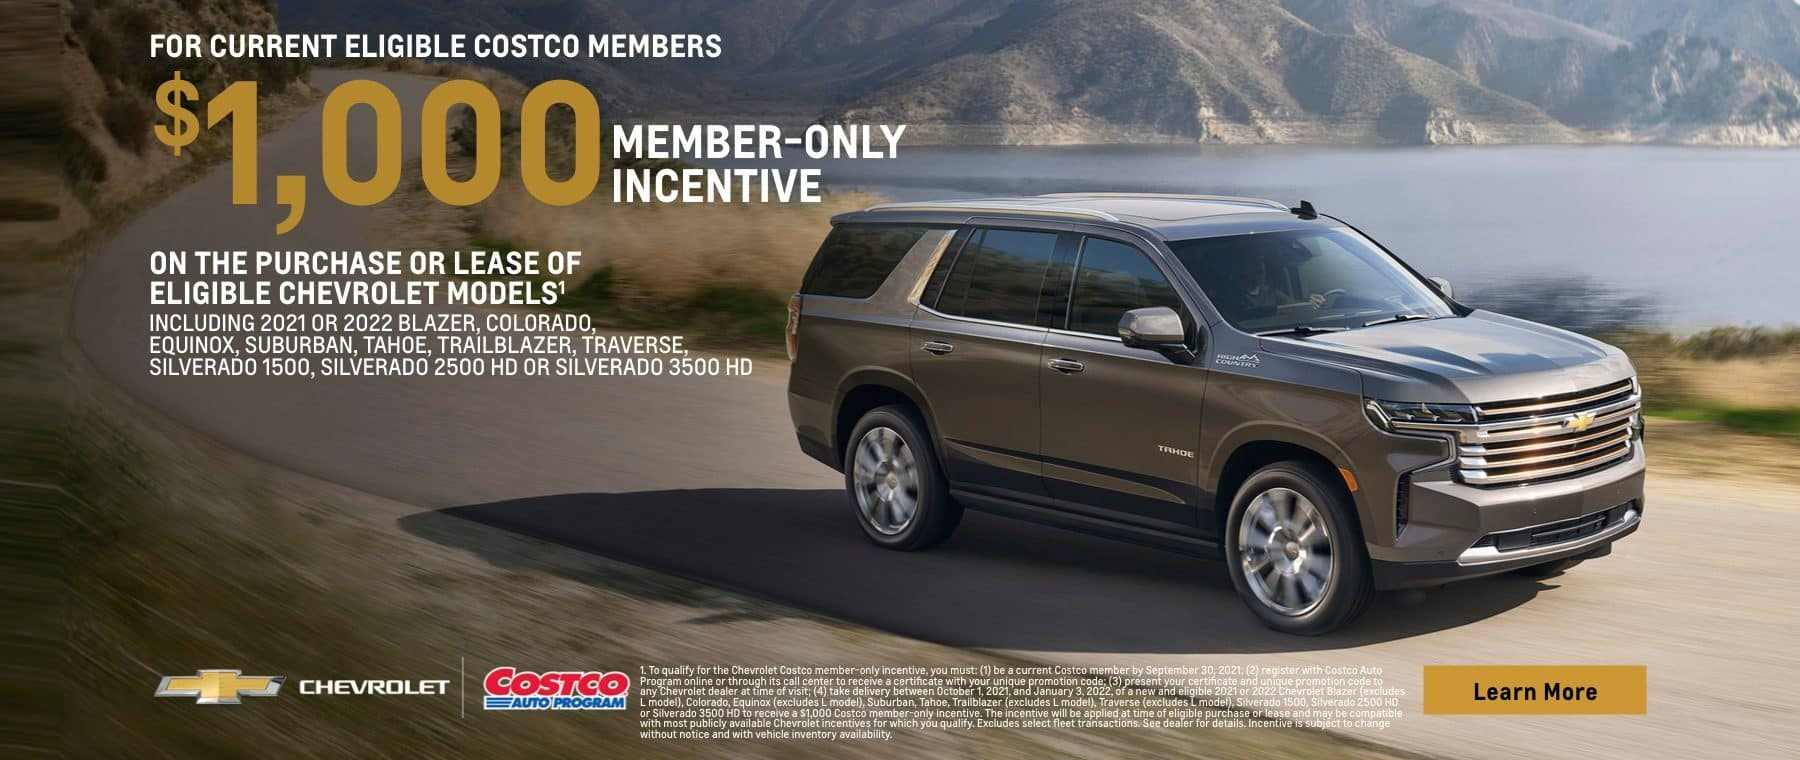 For current eligible costco members $1,000 member only incentive on the purchase or lease of eligible chevrolet models